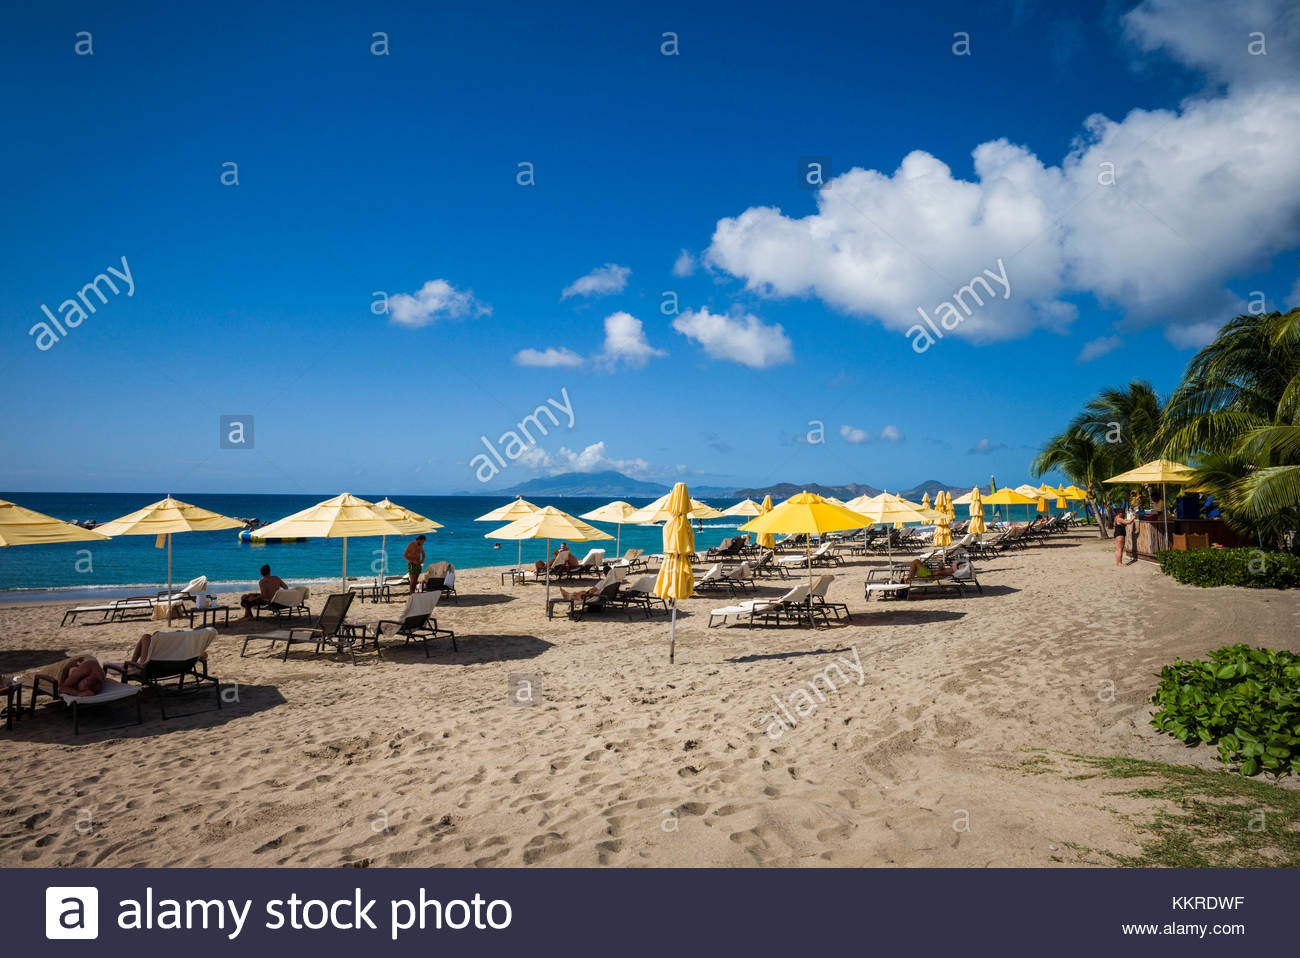 Windward Beach South Nevis, St Kitts Beach Stock Photos & St Kitts Beach Stock Images - Alamy